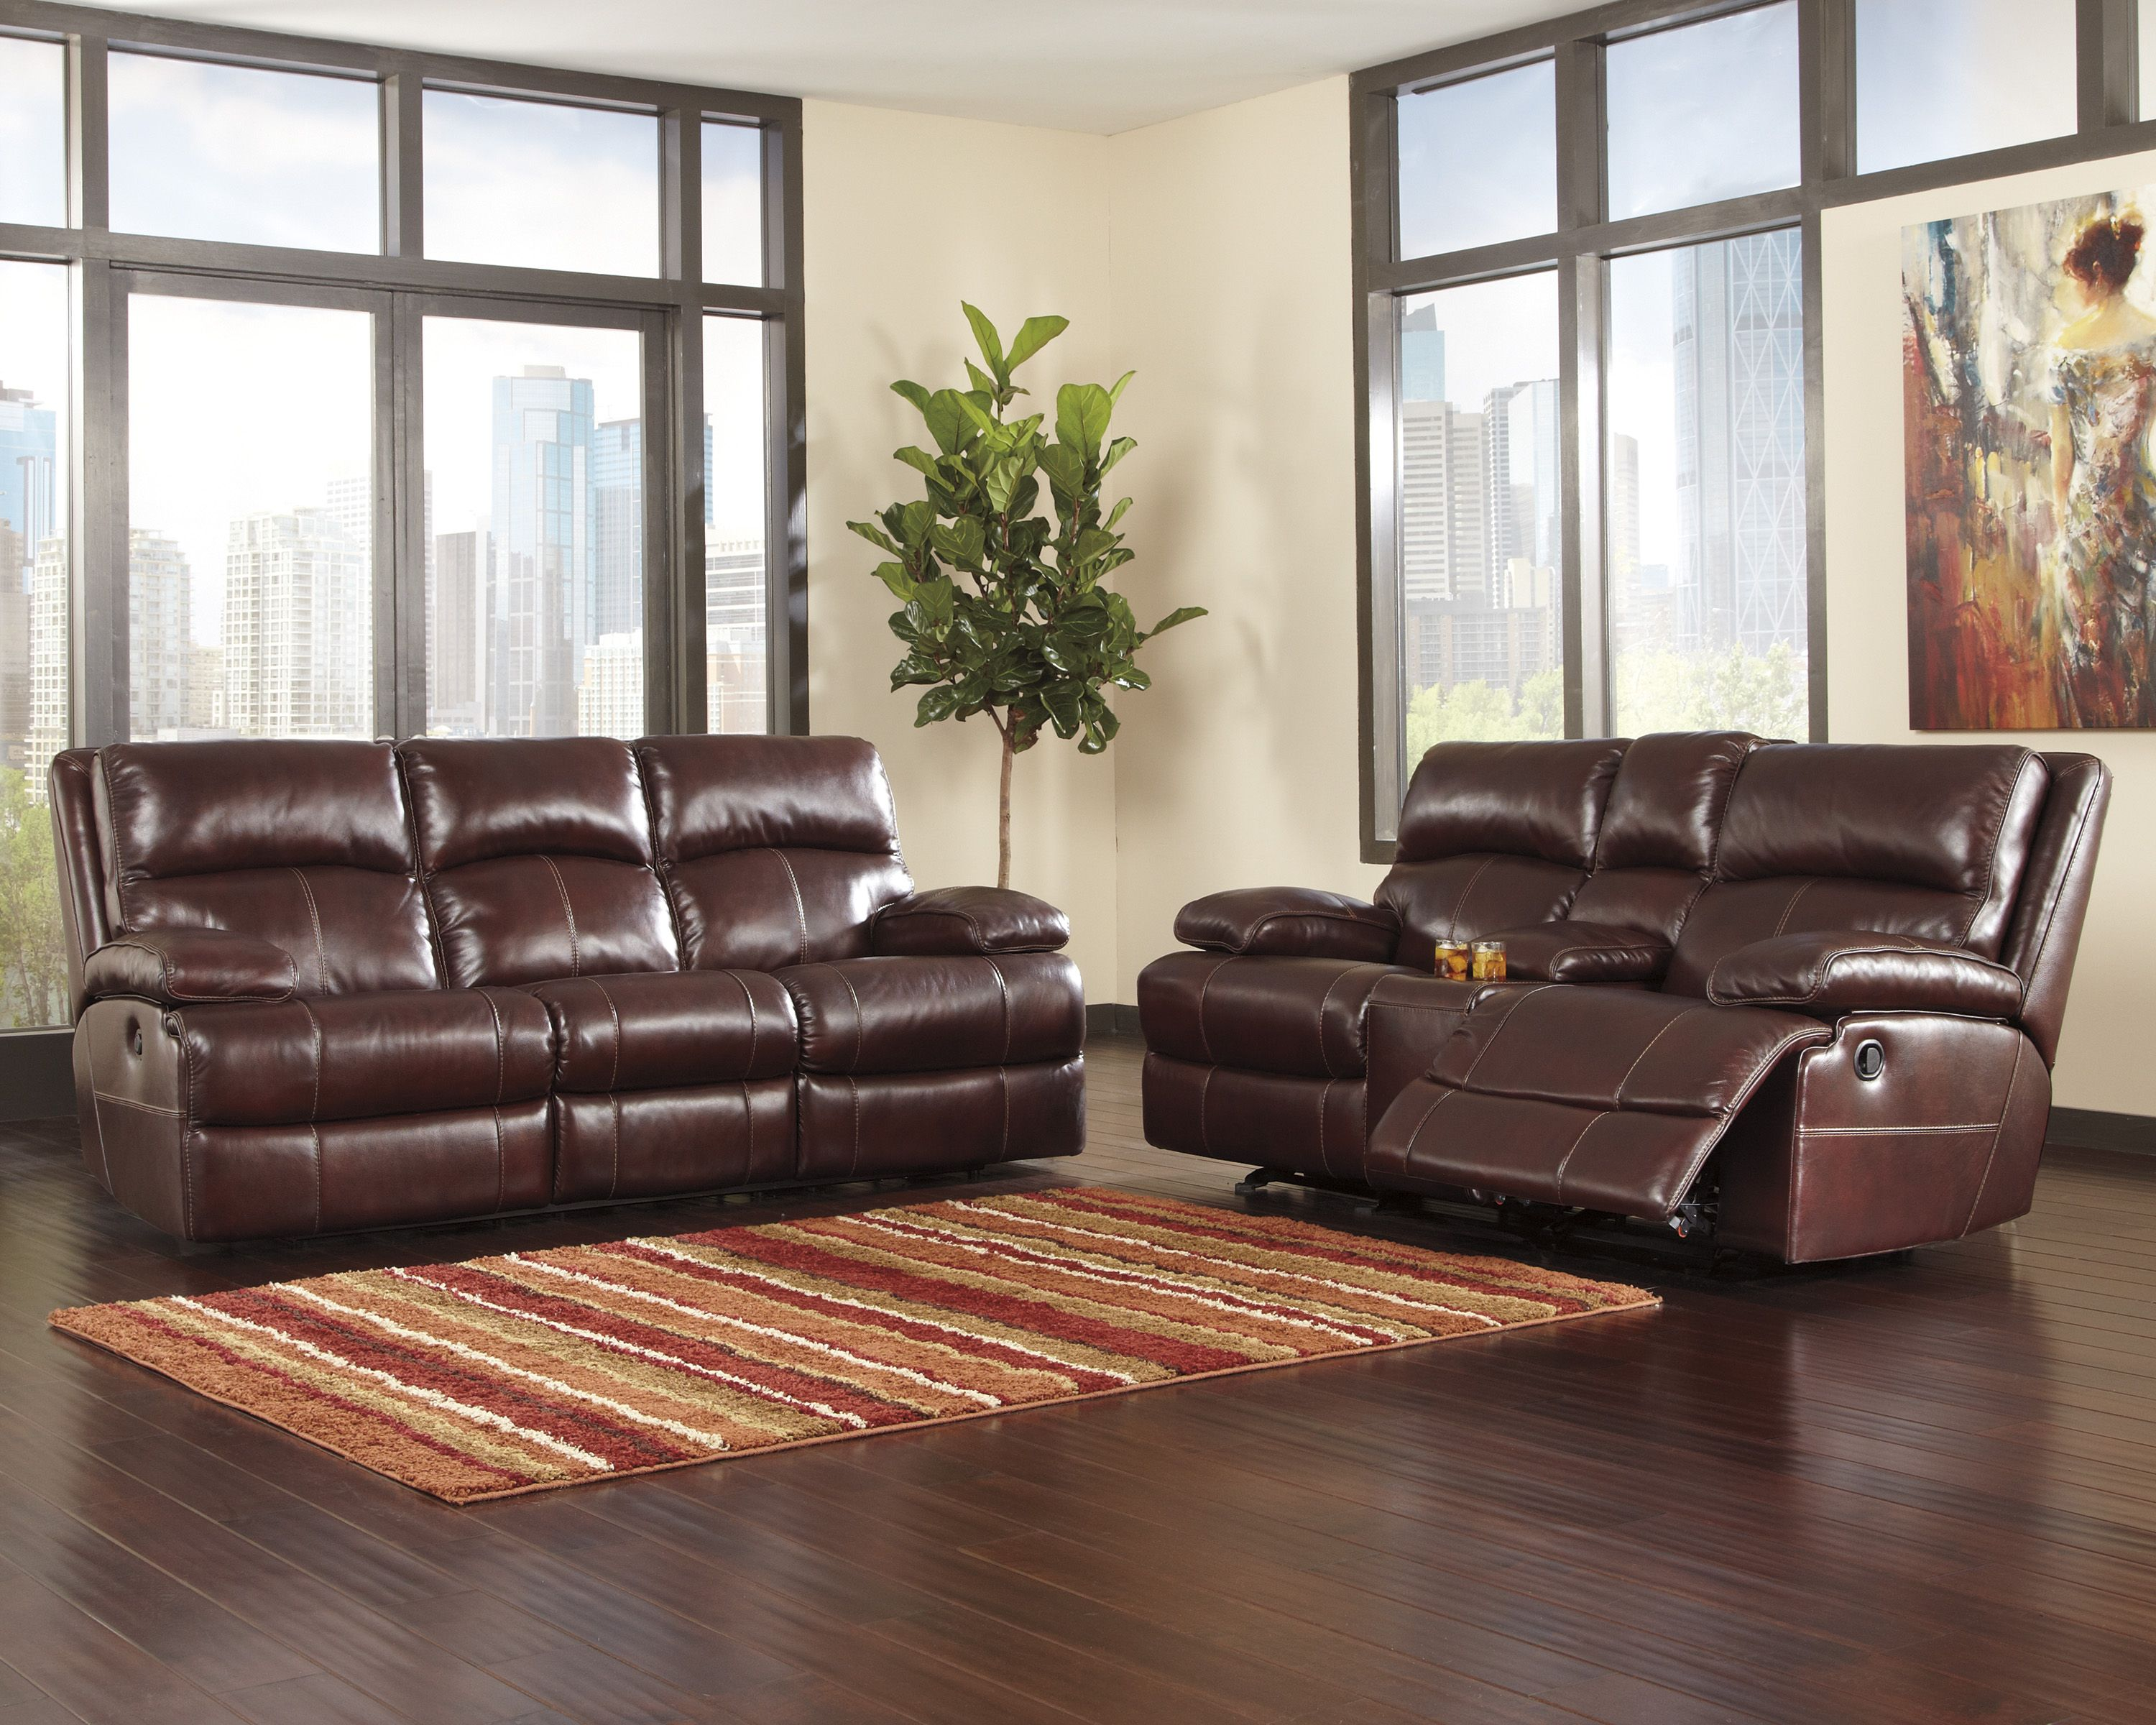 Top Design Of Ashley Couches For Contemporary Living Room Modular Sectional Sofa Leather